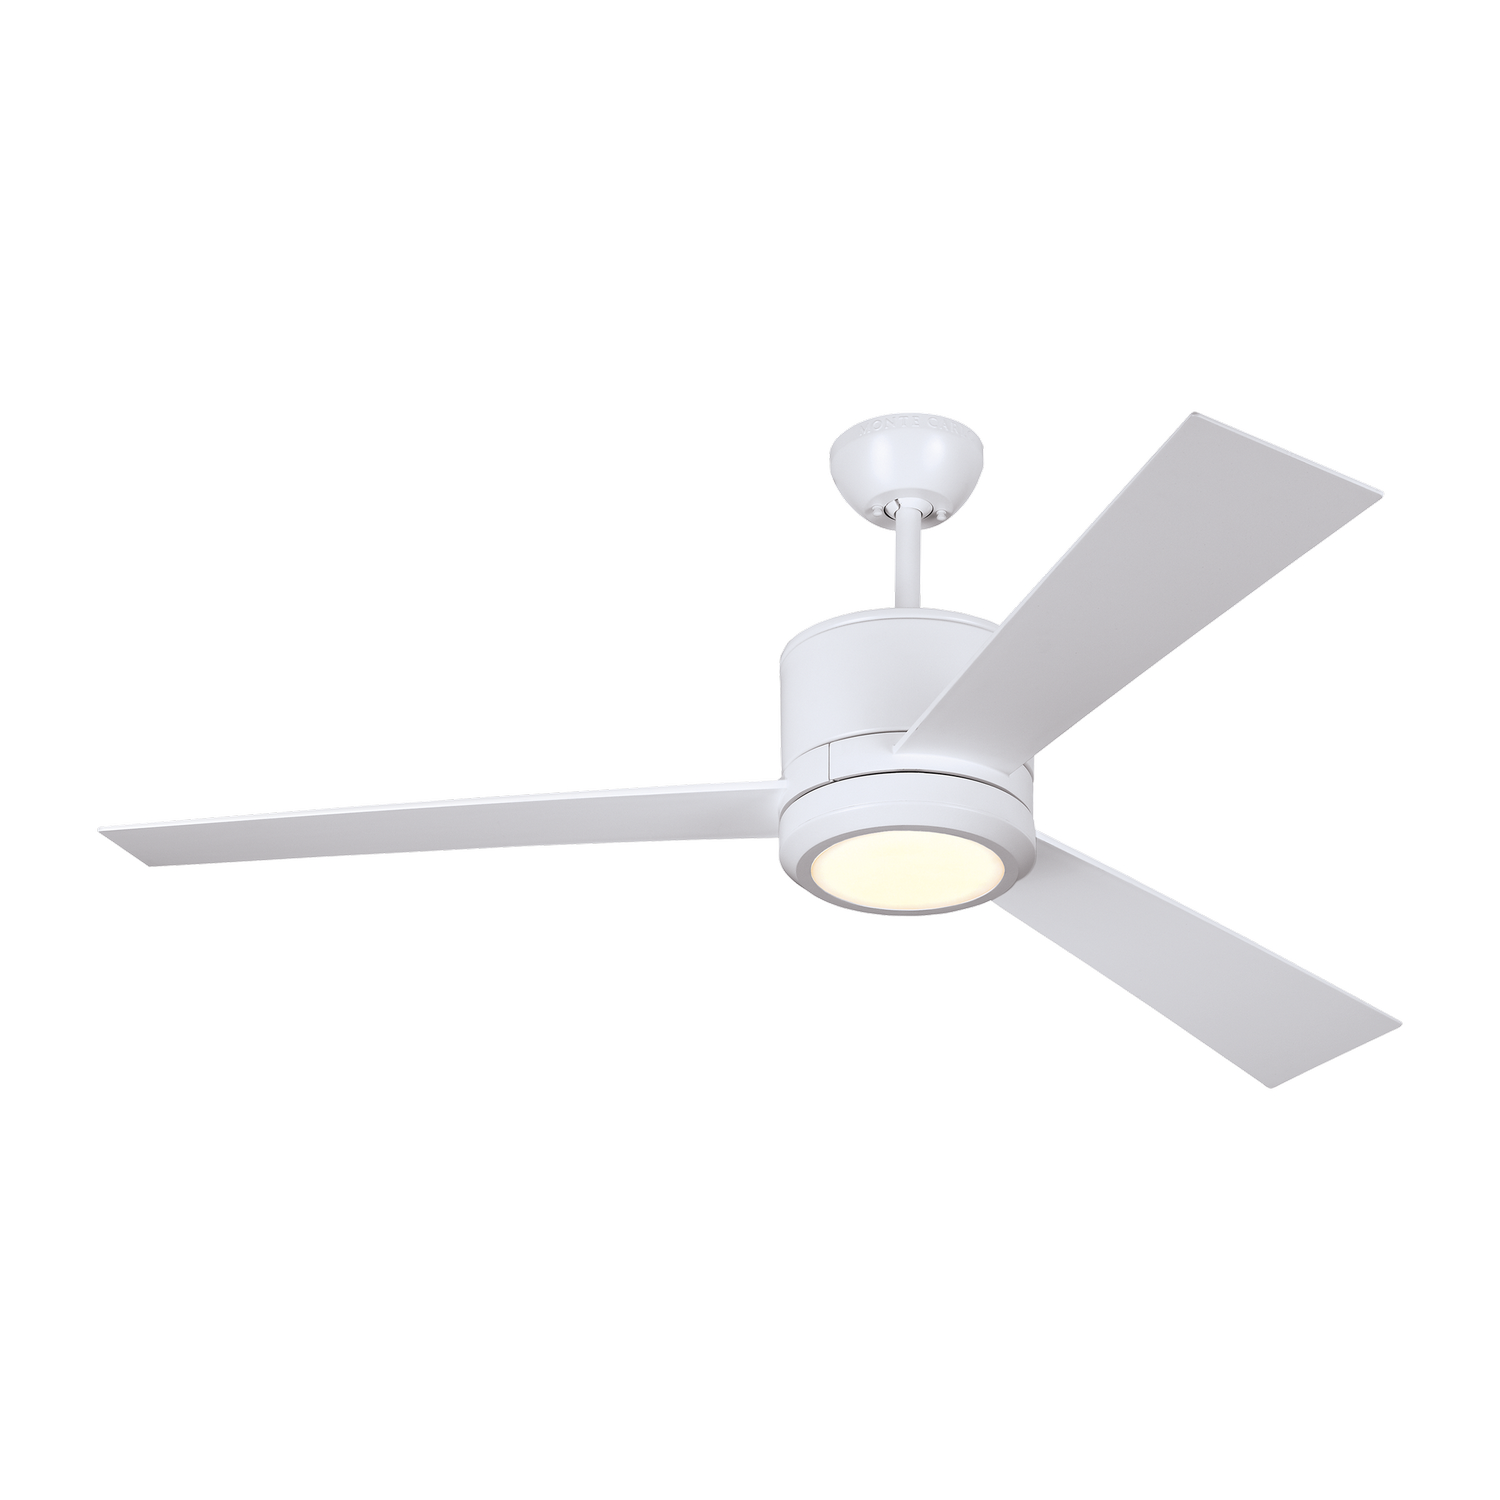 52 inchCeiling Fan from the Vision collection by Monte Carlo 3VNR52RZWD V1